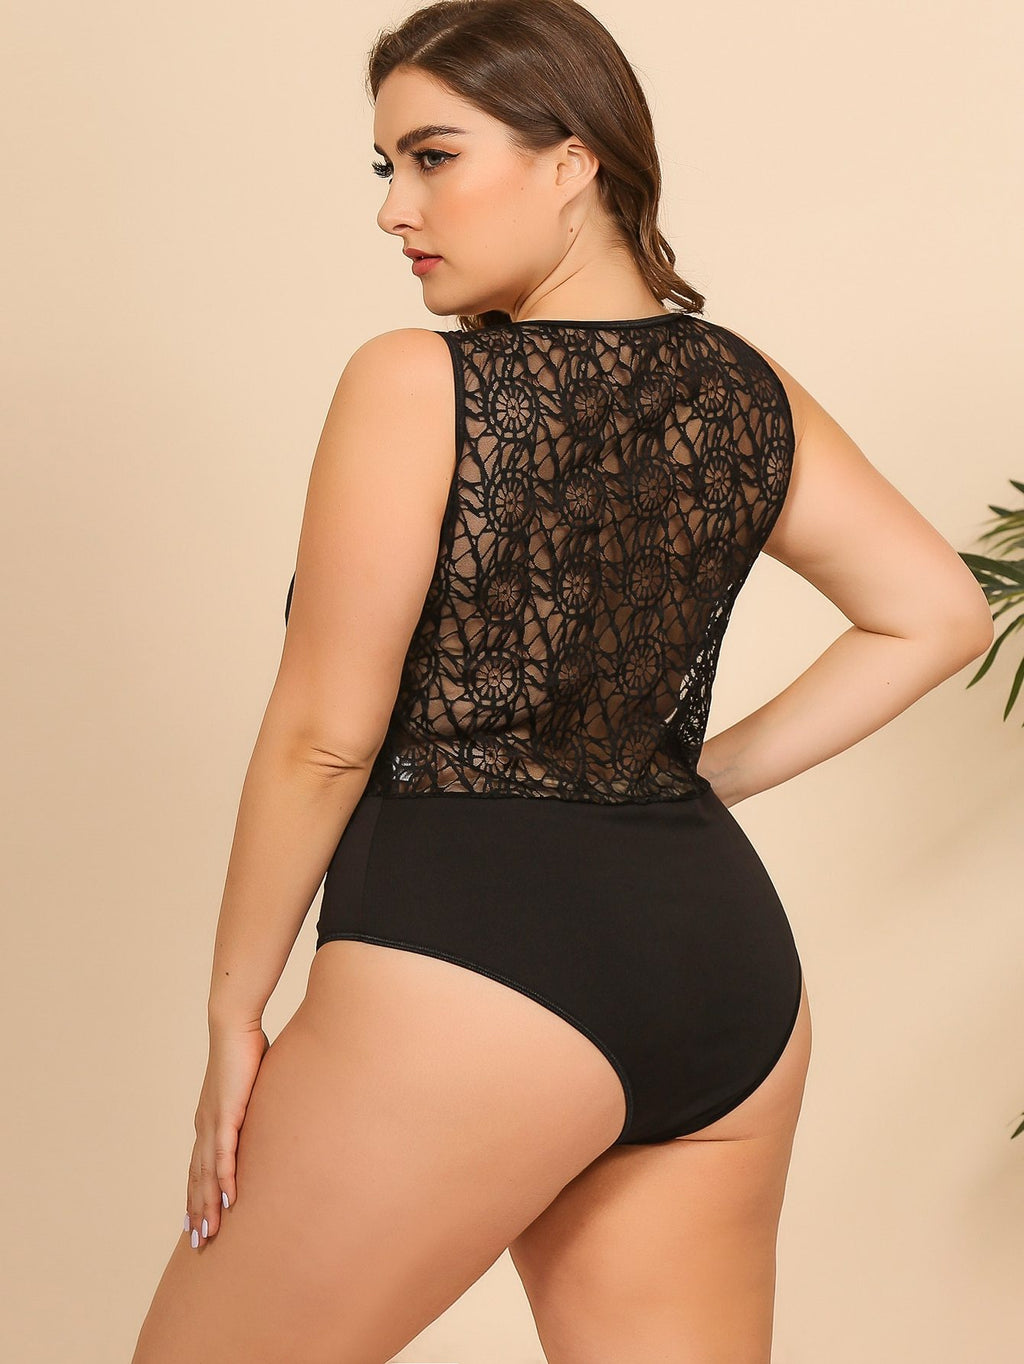 Plus Size See Through Contrast Lace Bodysuit Top